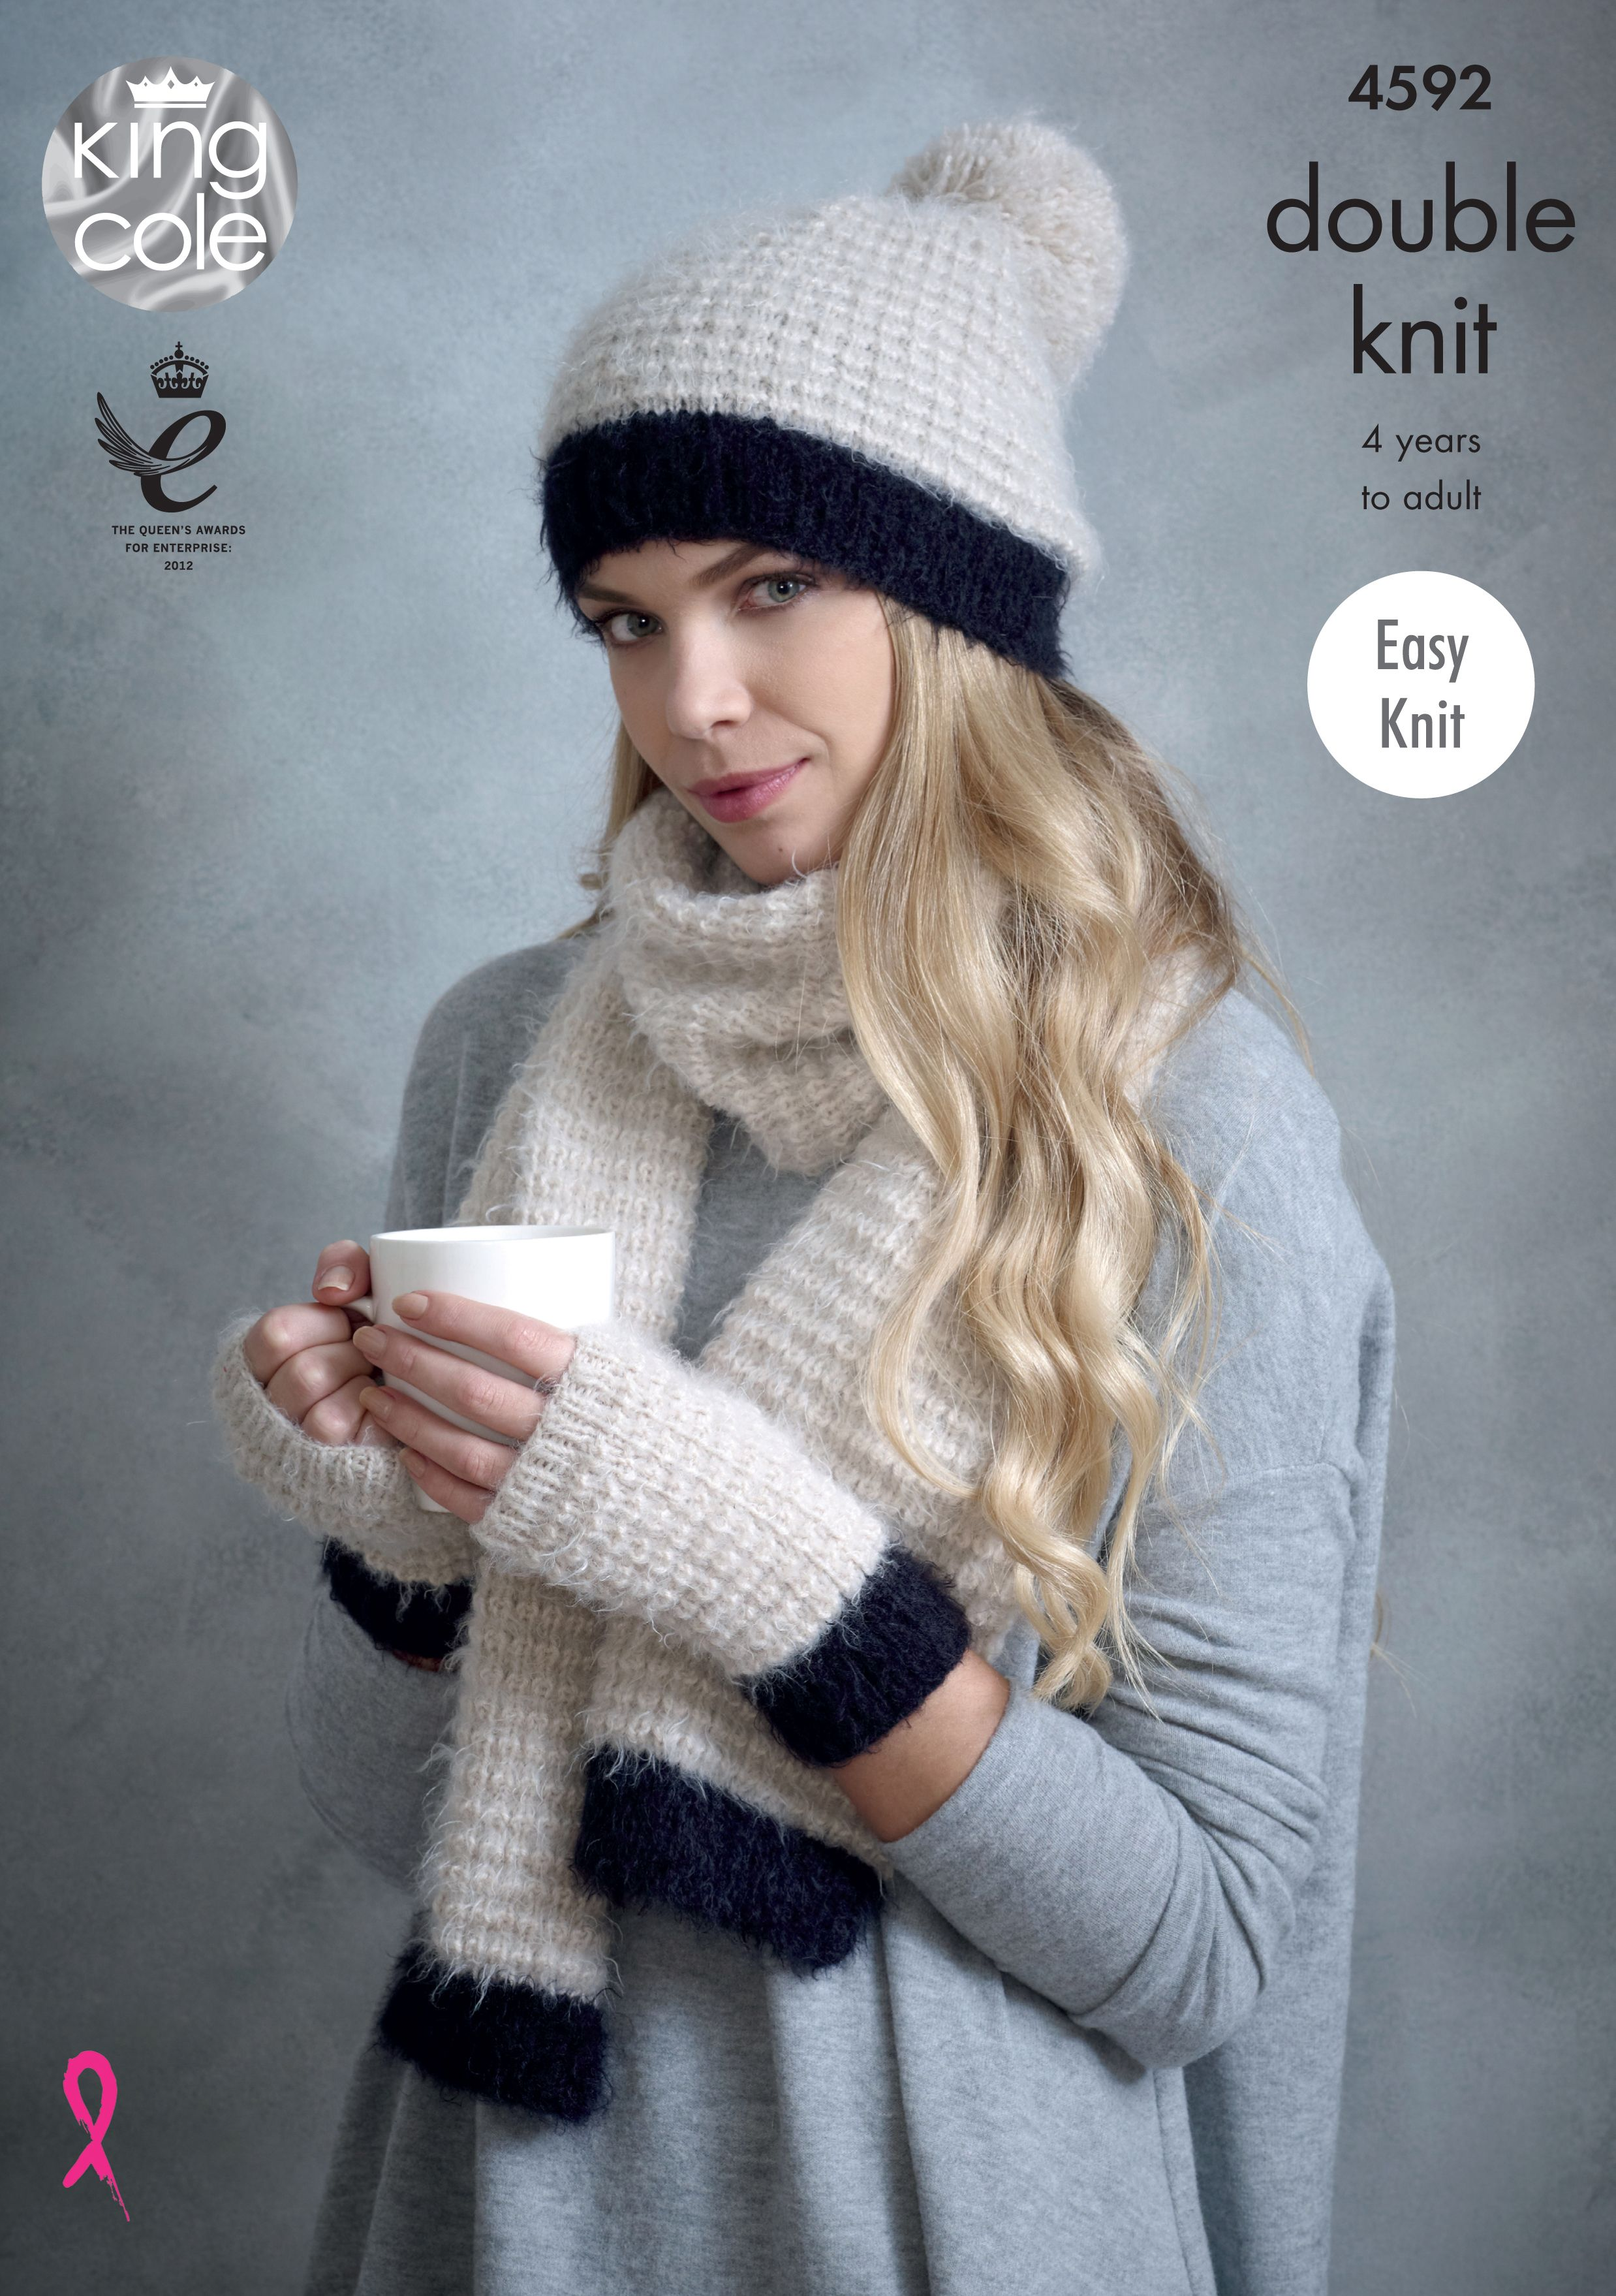 Stylish Comfortable Knitted Snood, Hats, Mitts & Scarf - King Cole ...